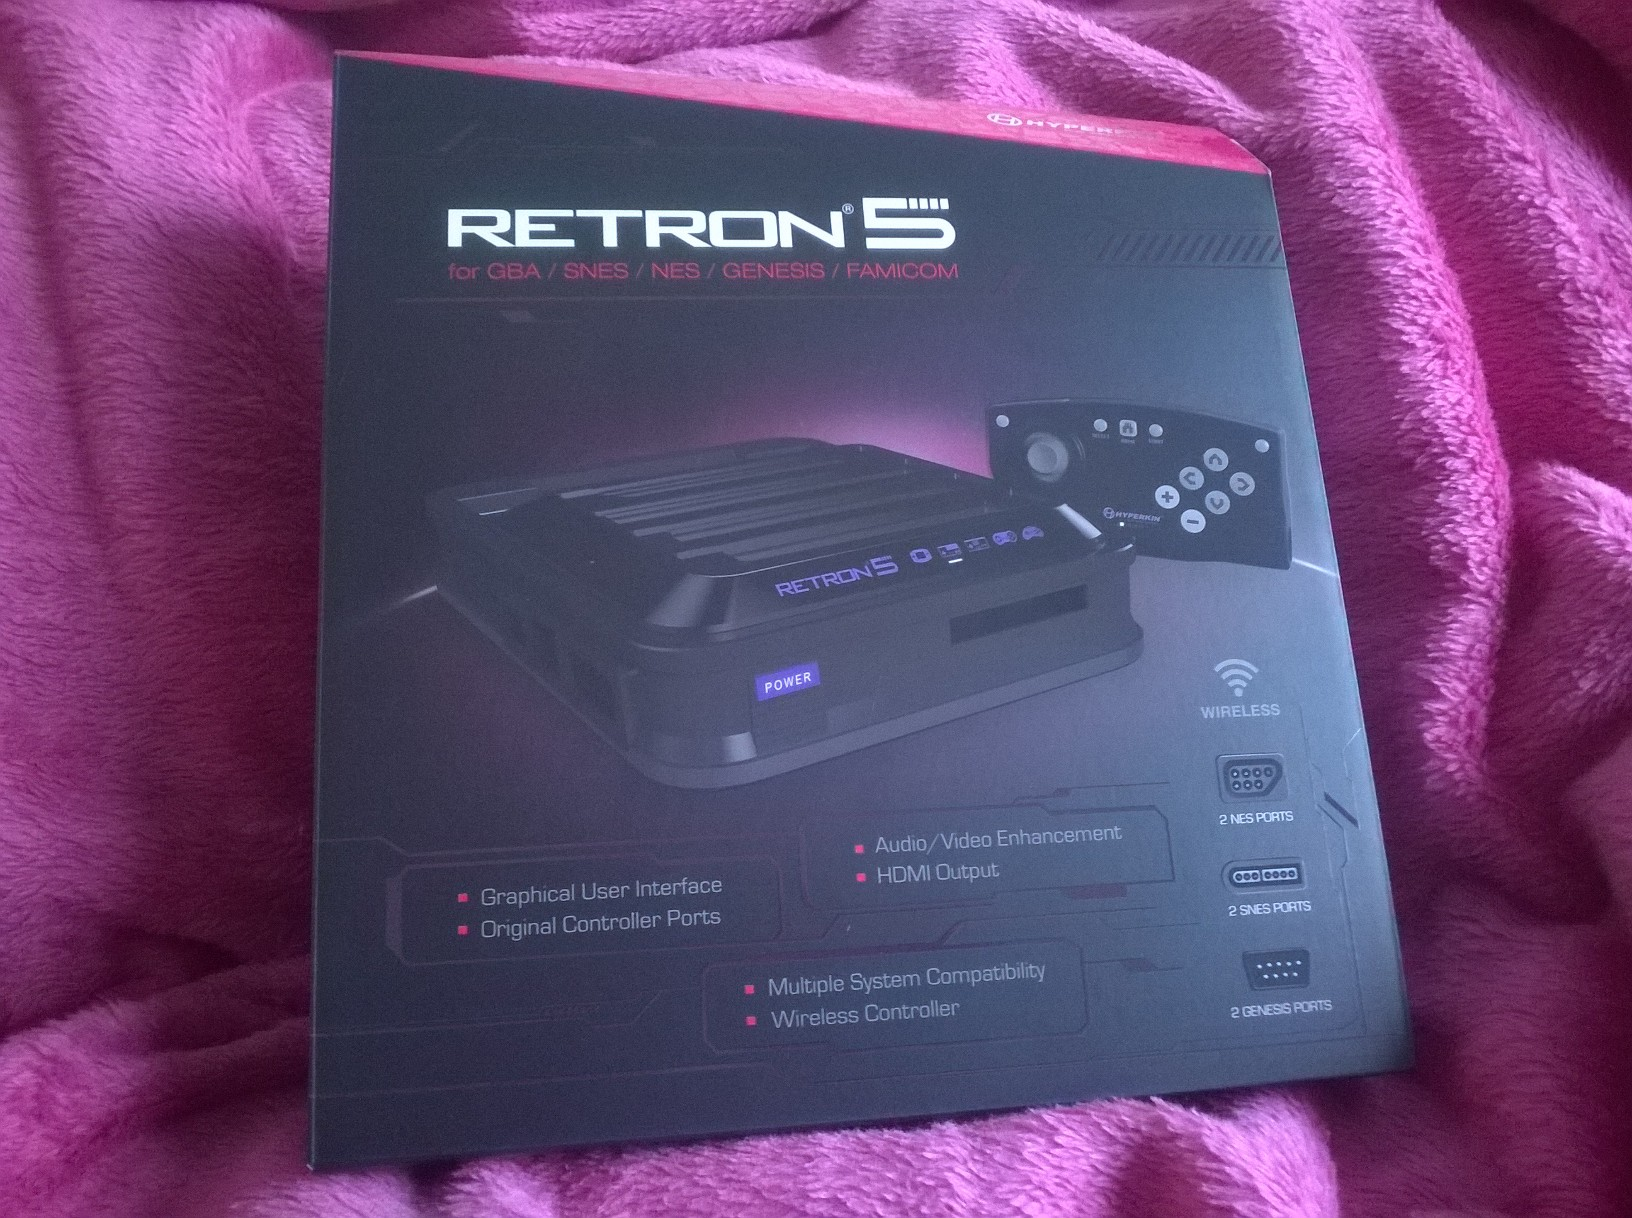 The Retron5 comes in a very cool looking box